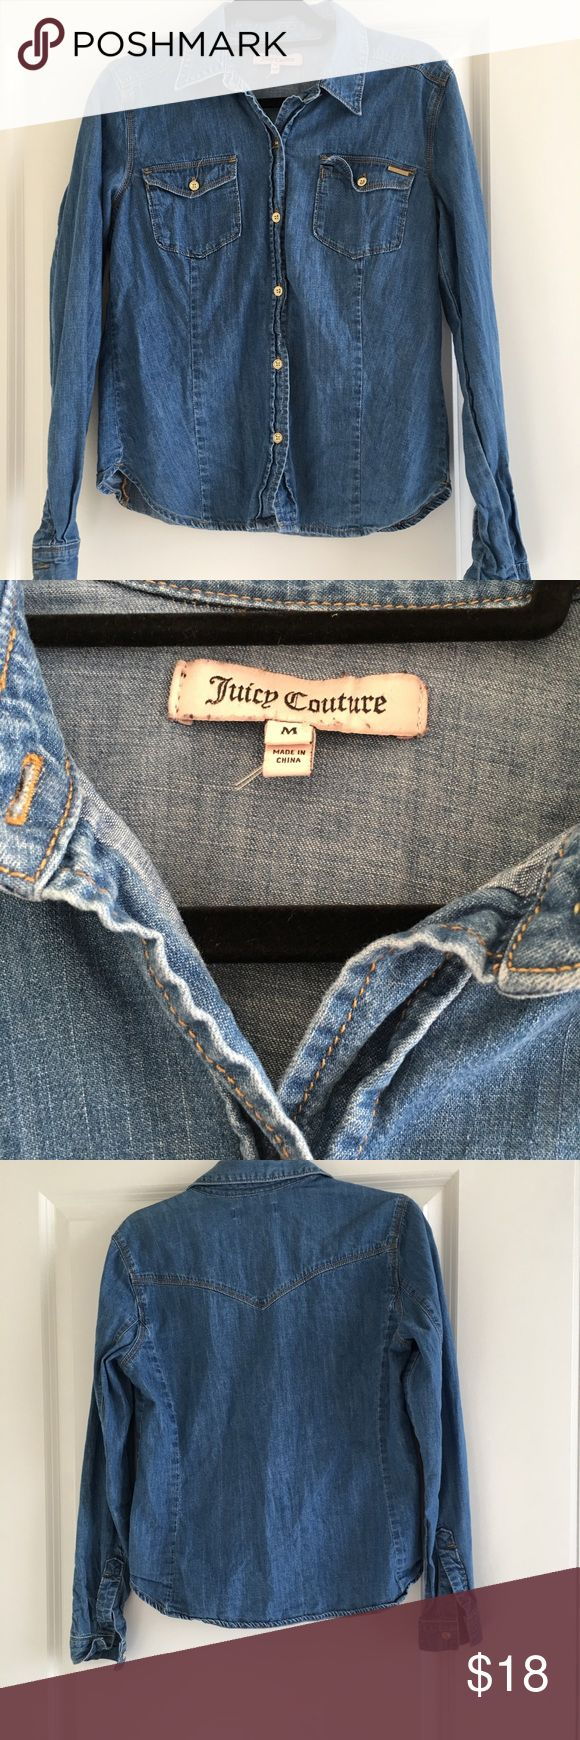 Juicy Couture Denim Long Sleeved Top Size M Juicy Couture Denim Long Sleeved Top Size M Juicy Couture Tops Button Down Shirts